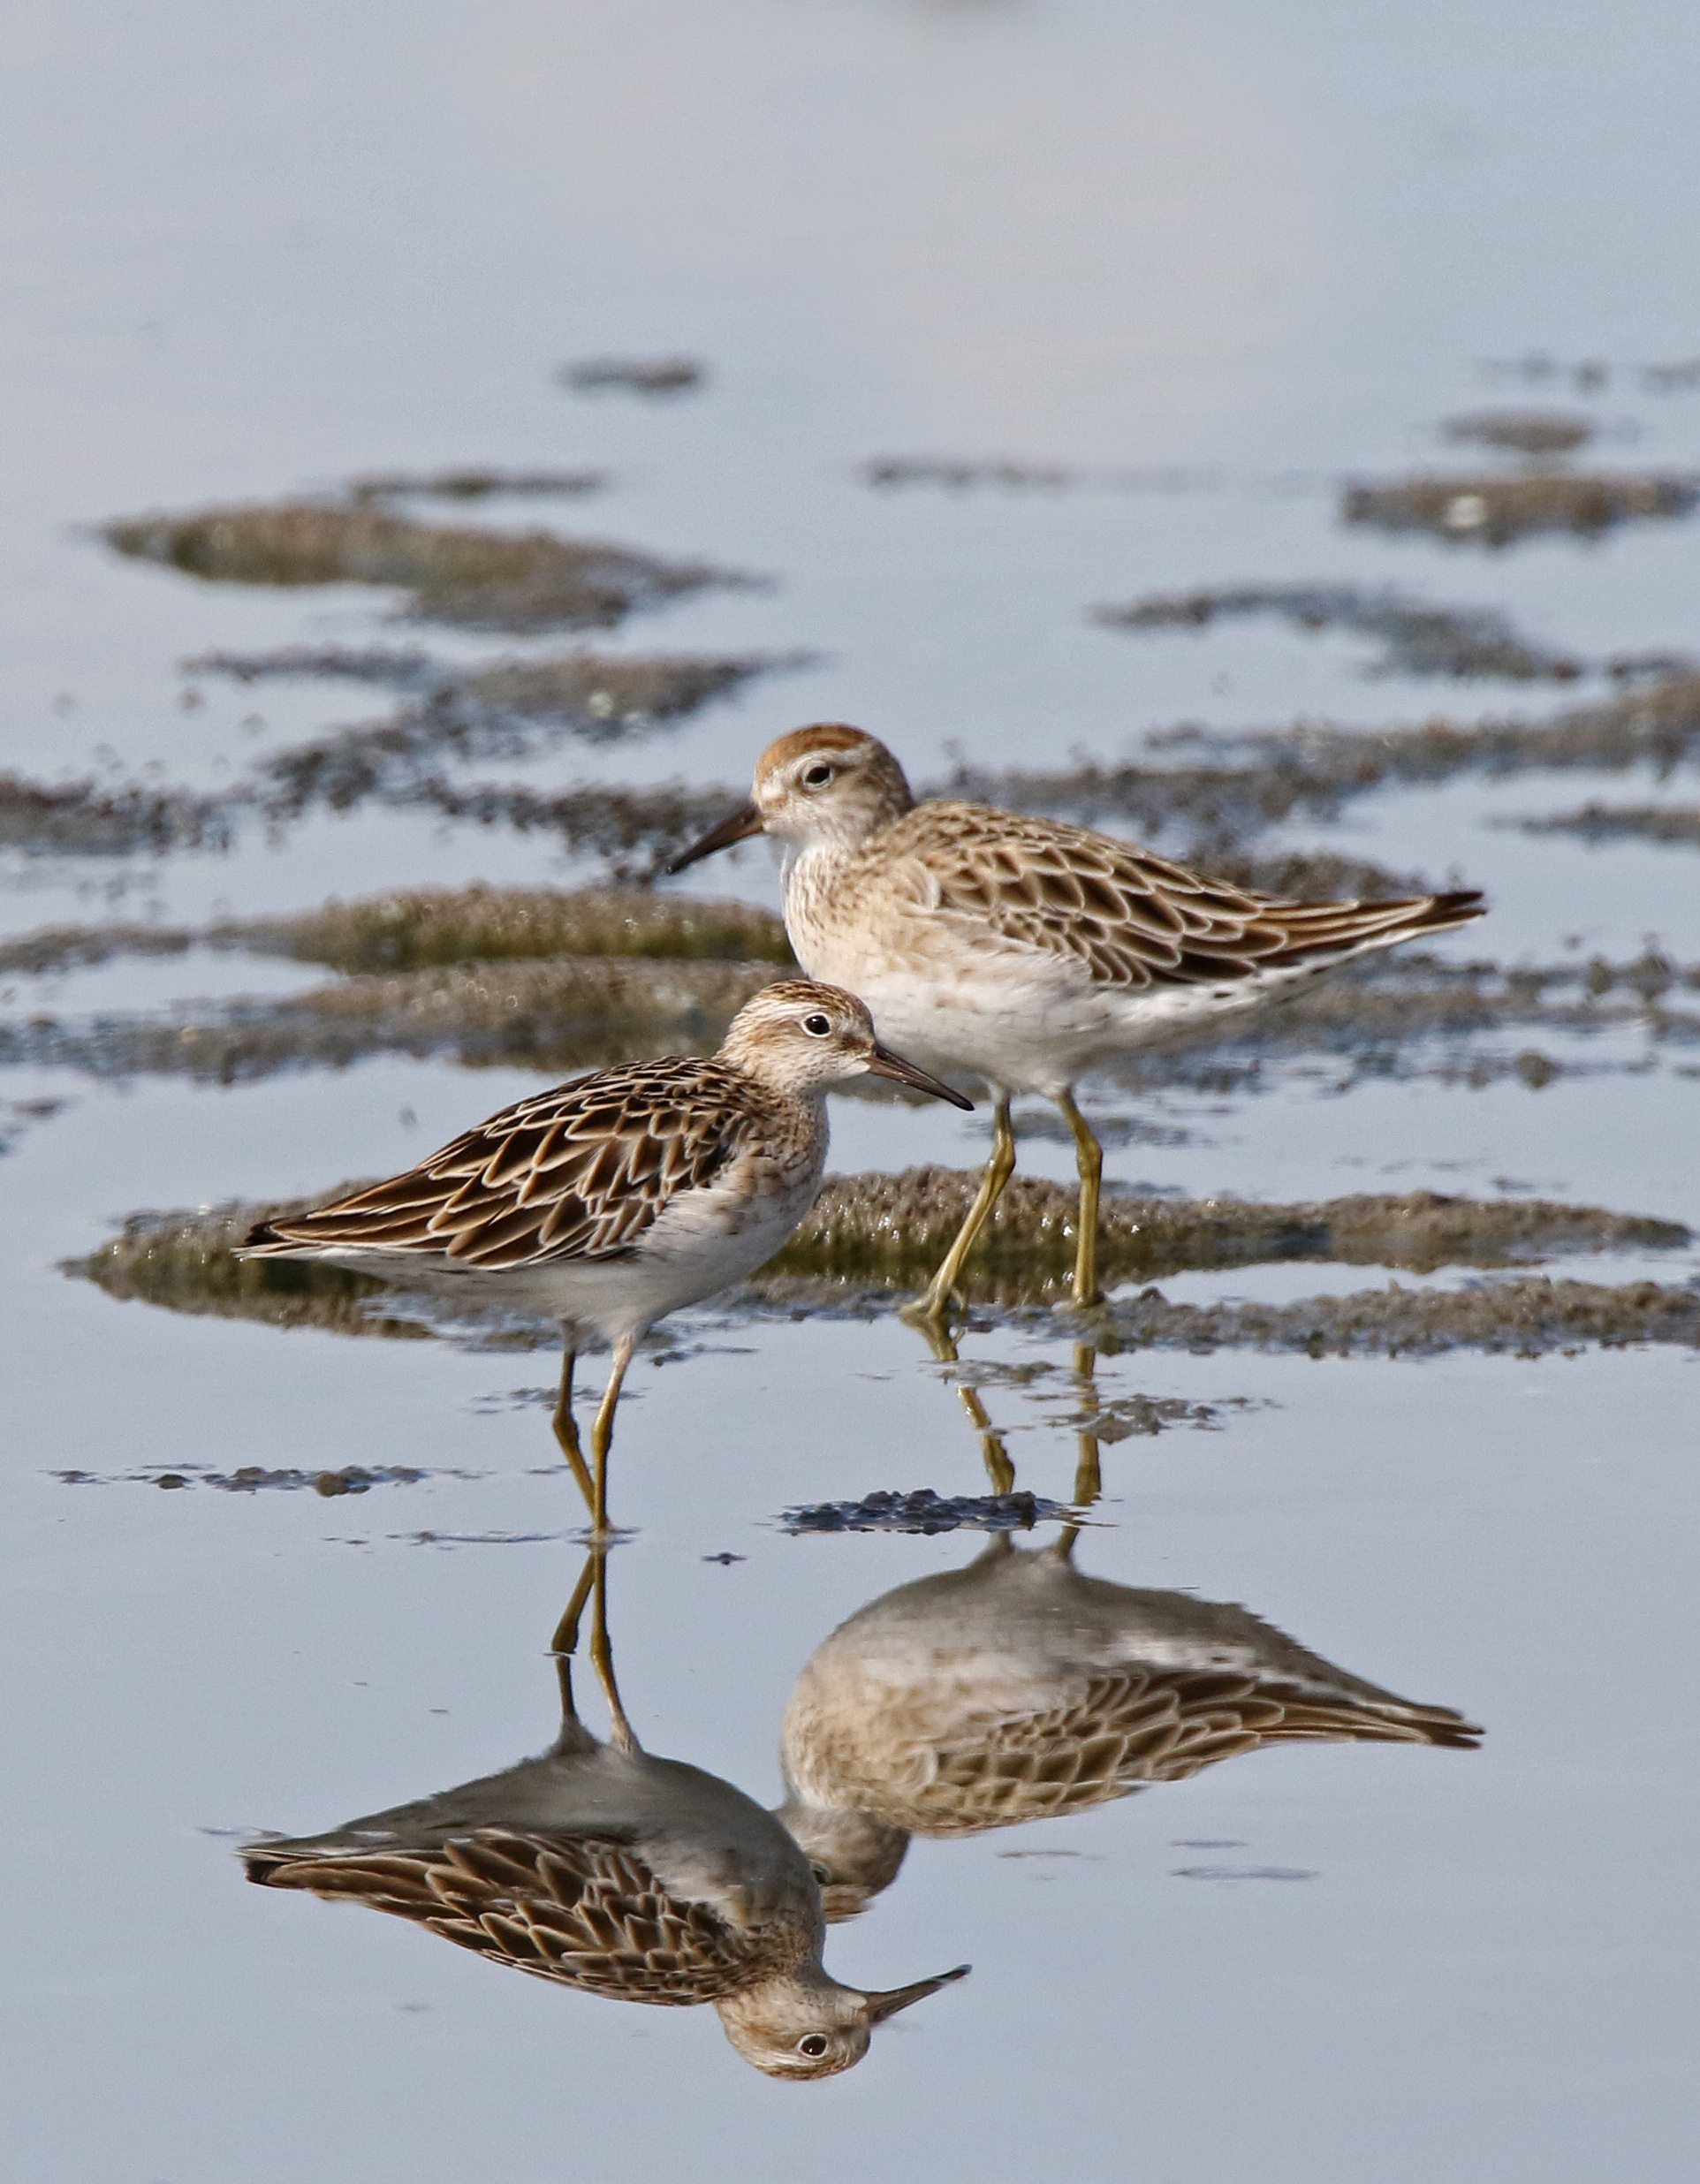 #9 Sharp-tailed Sandpiper. Photo by Pete SImpson.